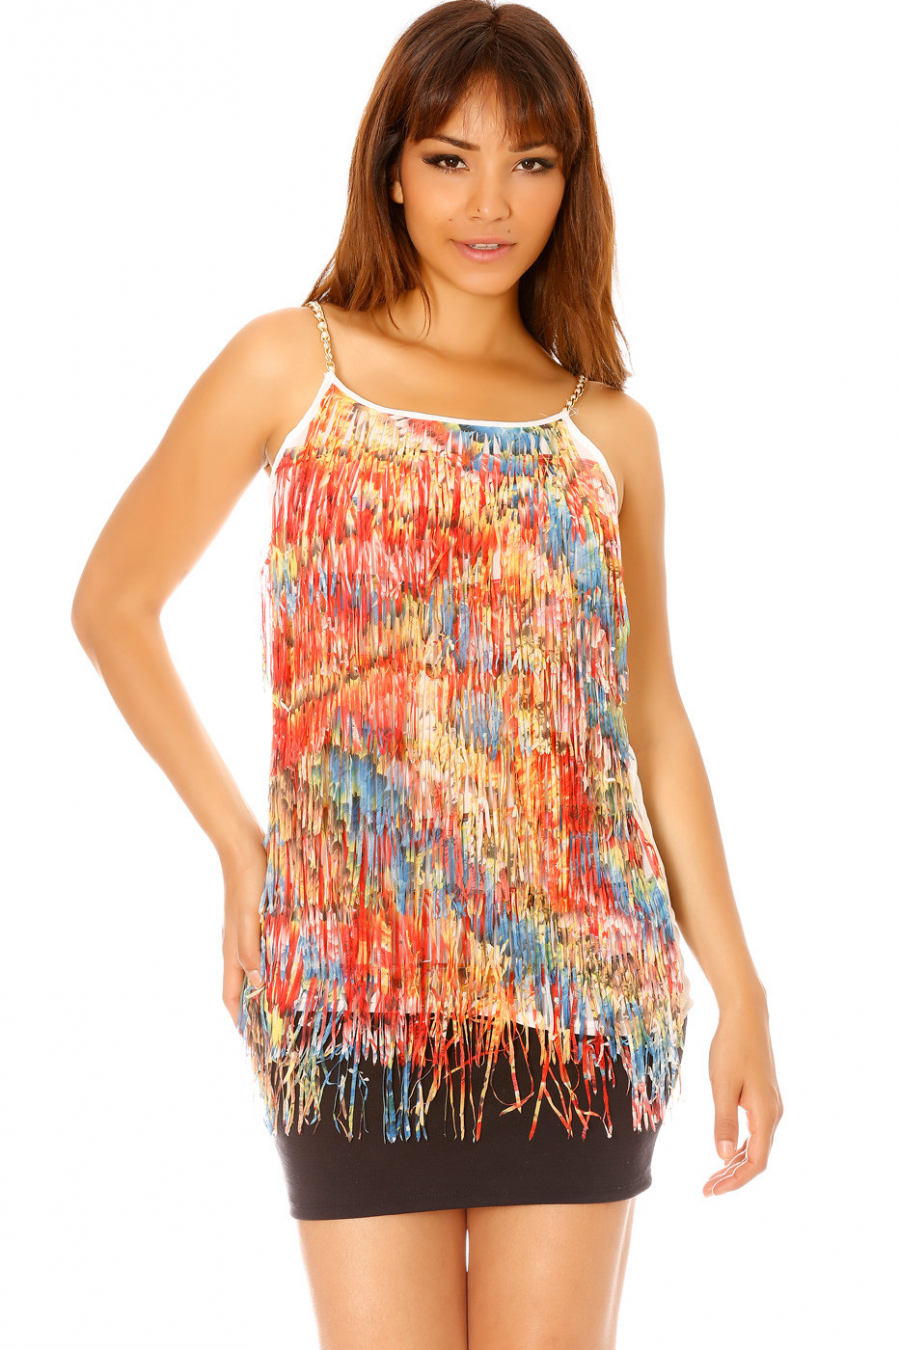 White Charleston style dress with multicolored fringes ML1189